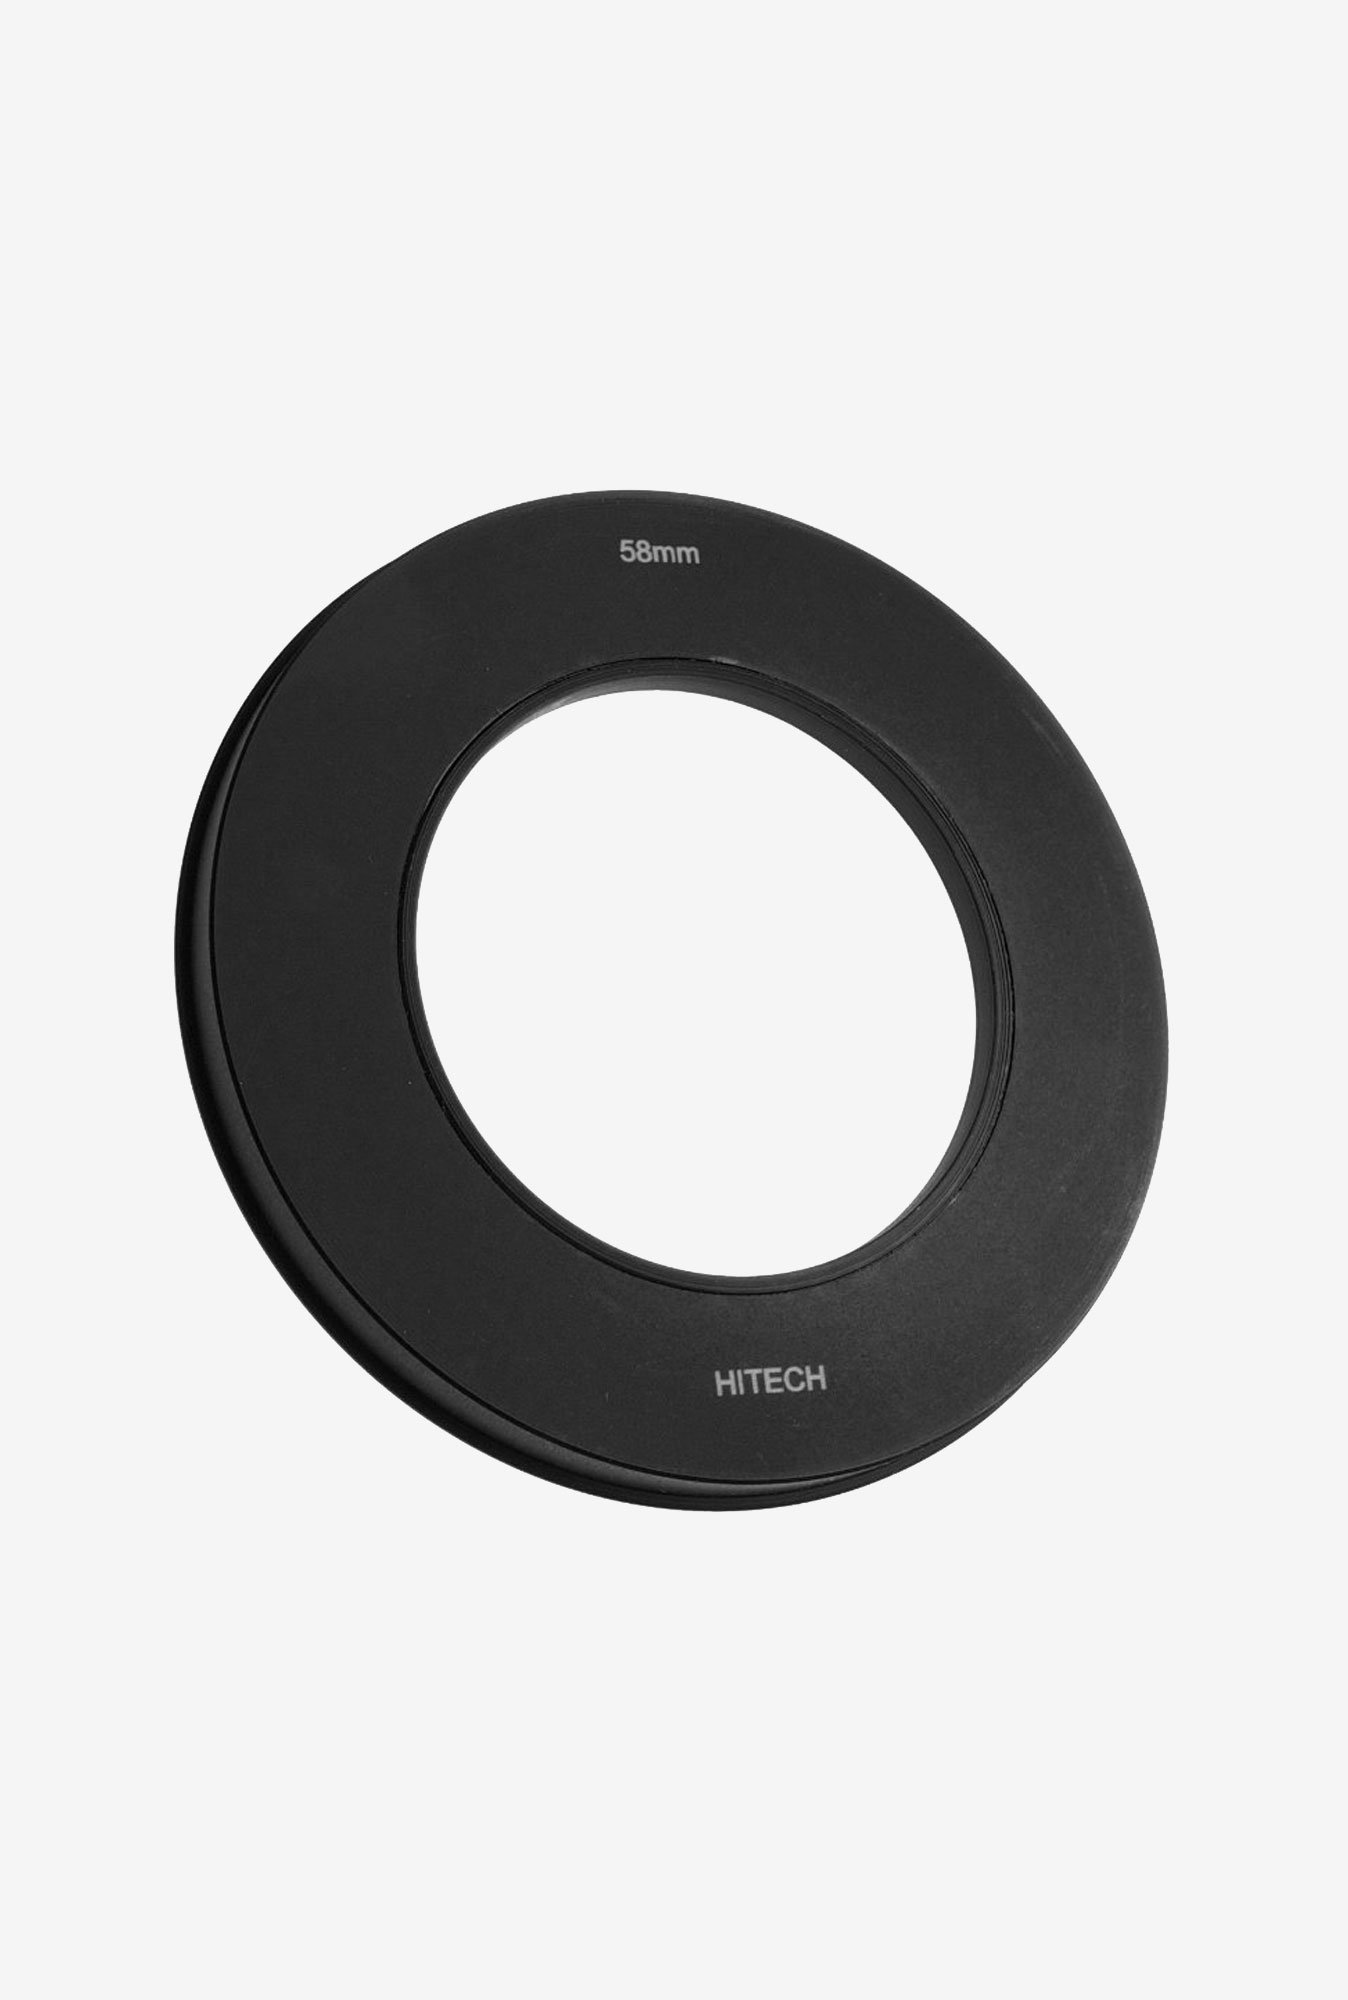 Formatt-Hitech 58 mm Adaptor for Aluminium Holder (Black)